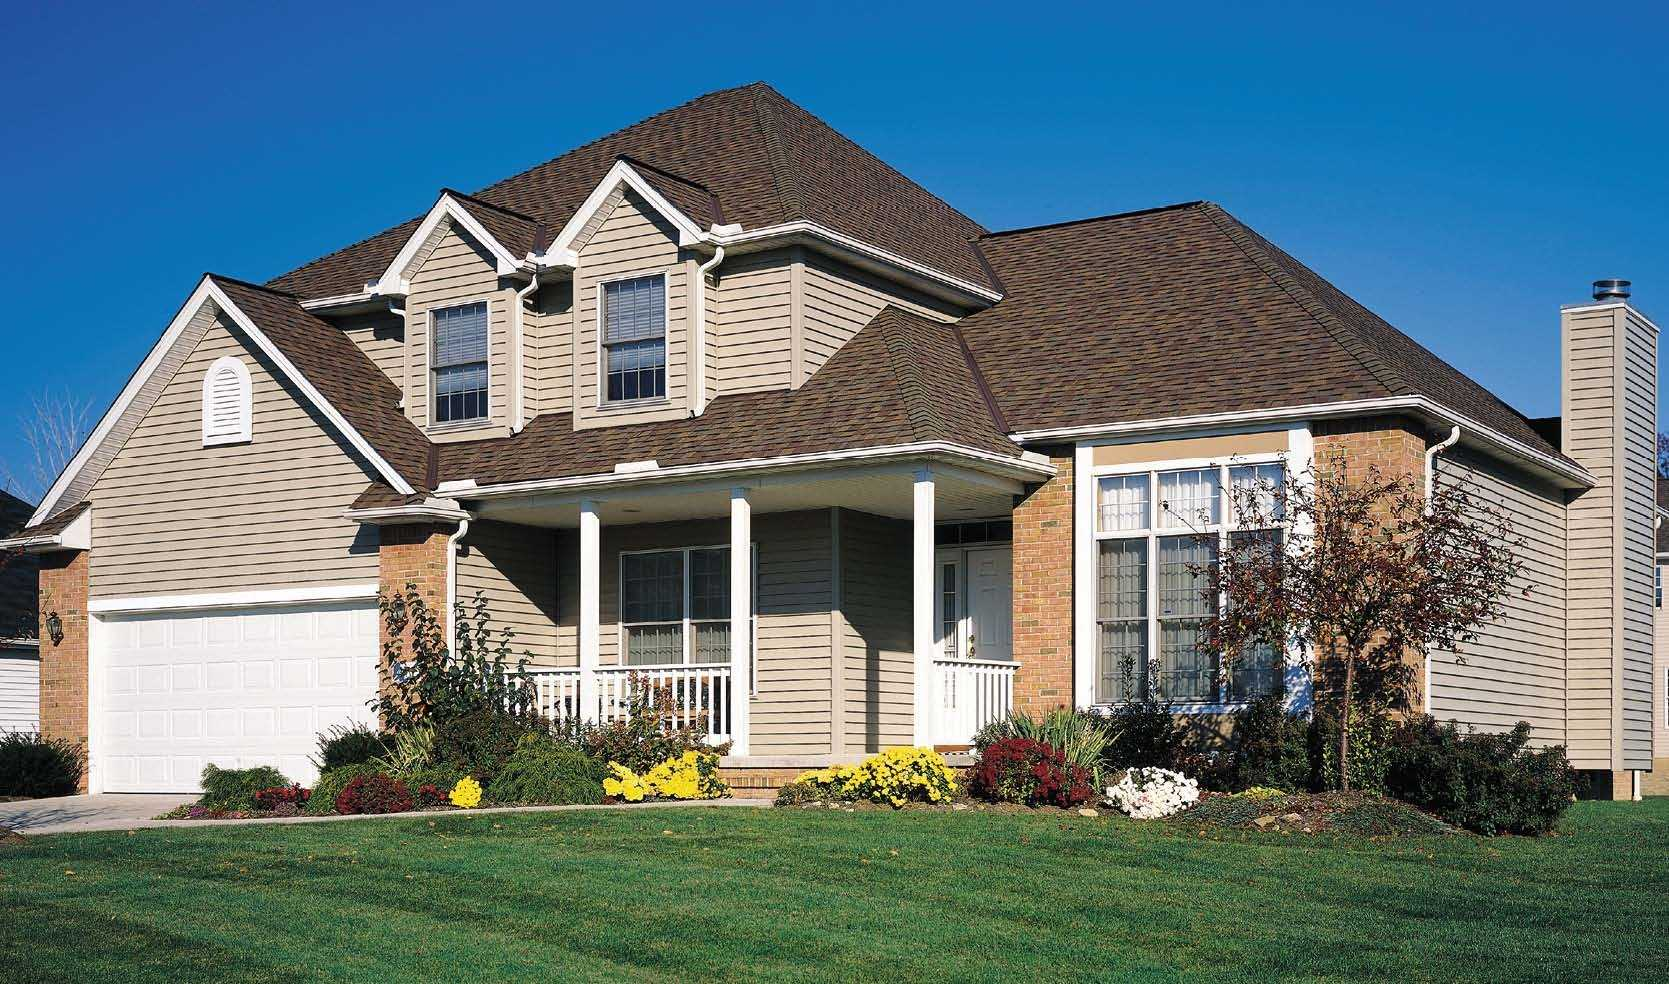 All You Need To Know About Home Roofing